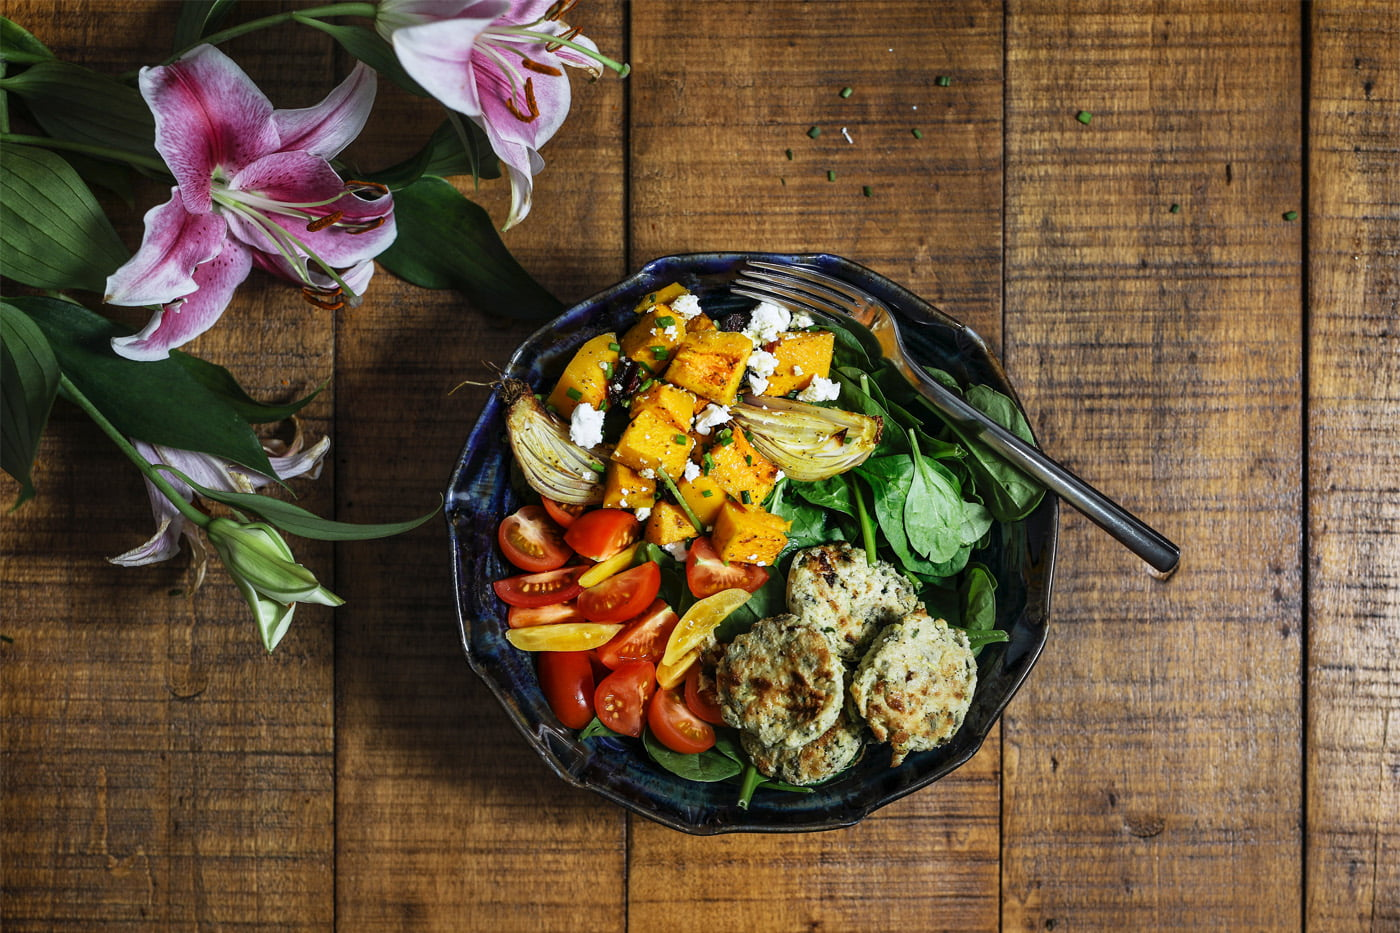 Simple Ways to Reset Your Eating Habits